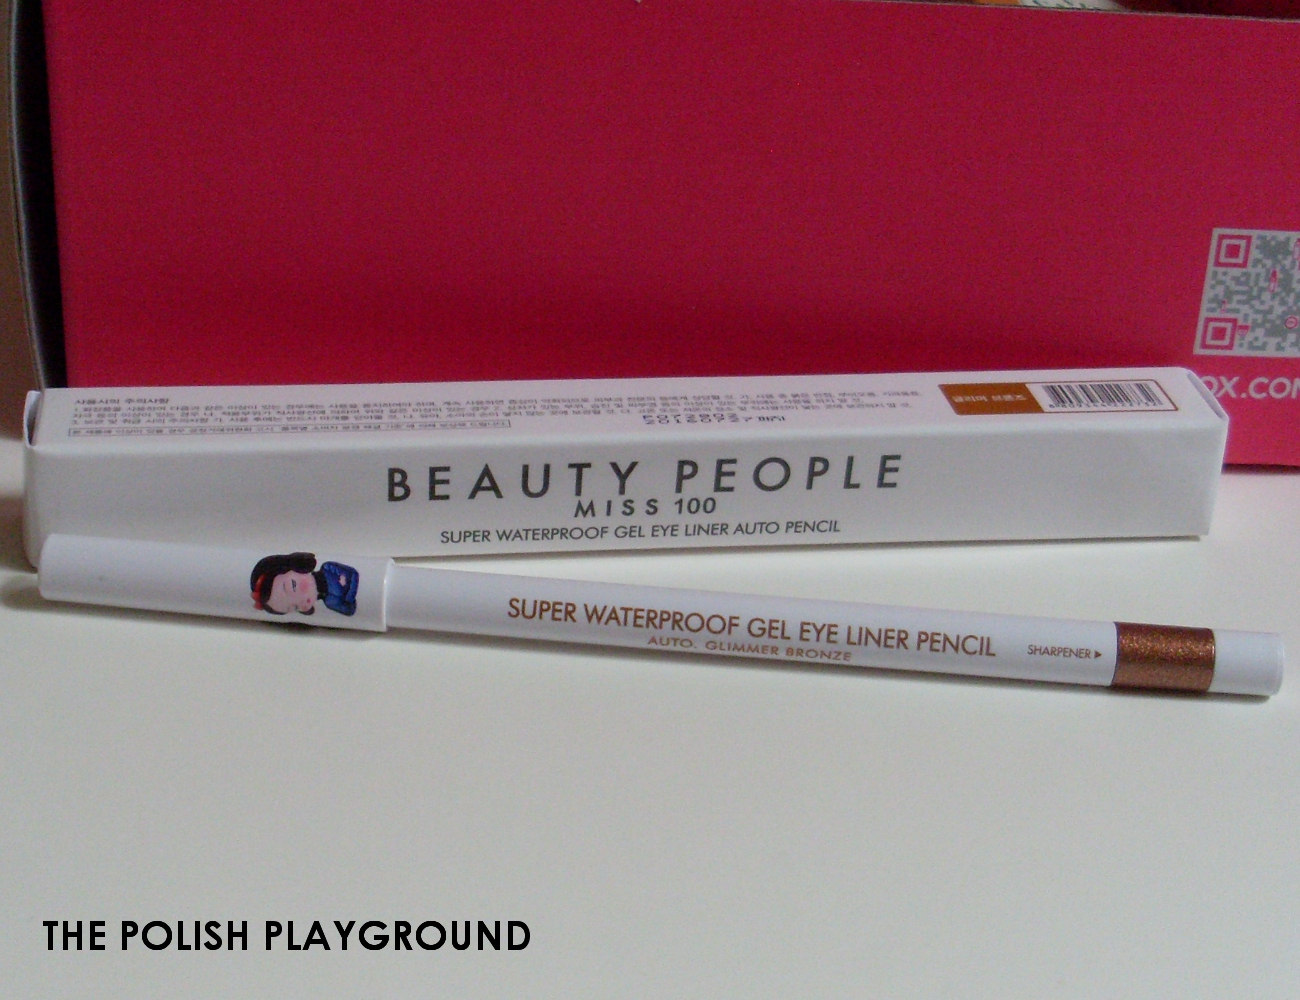 Memebox Global #14 Unboxing - Beauty People Miss 100 Super Waterproof Gel Liner Auto Pencil in Glimmer Bronze